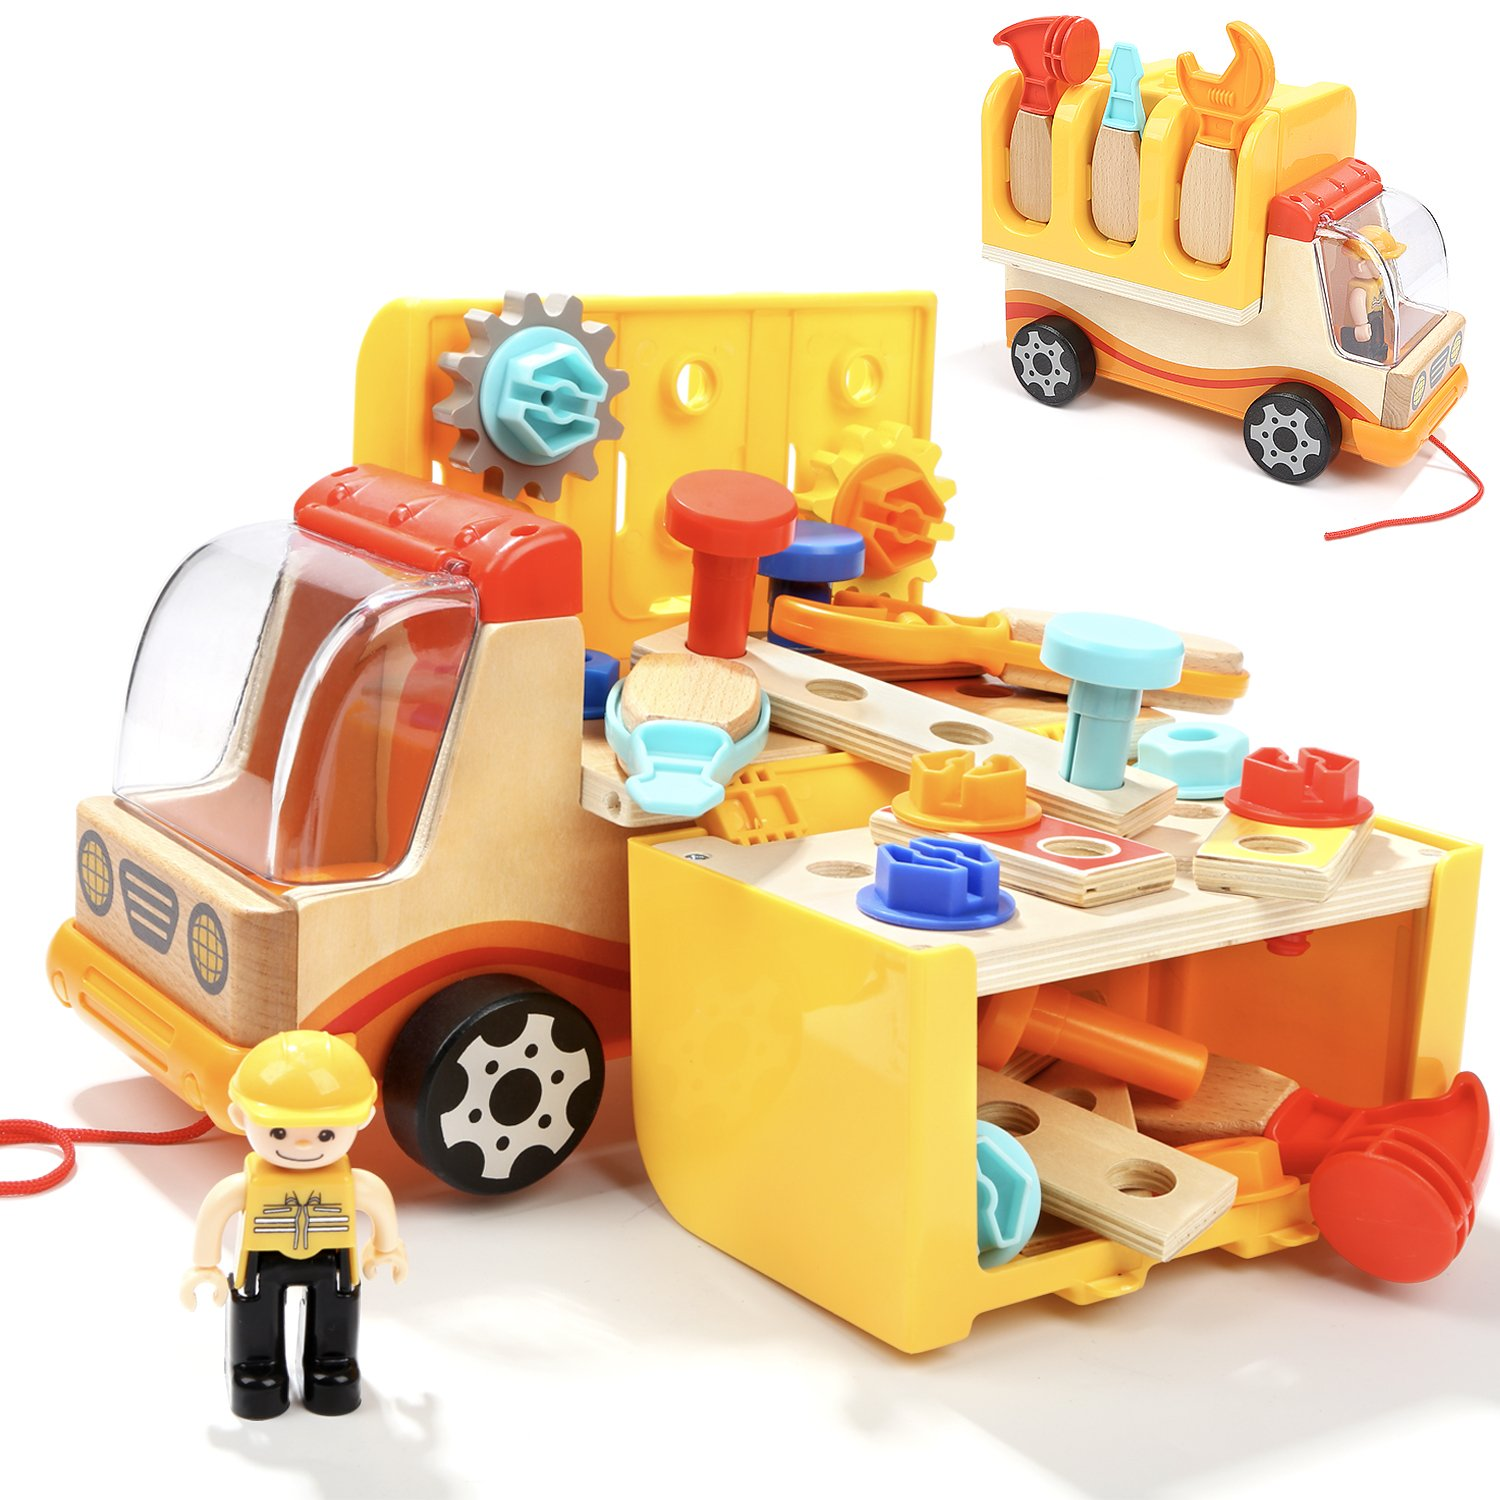 TOP BRIGHT Toddler Tools Set Toys for 2 Year Old Boy Gifts Kids Toy Truck by TOP BRIGHT